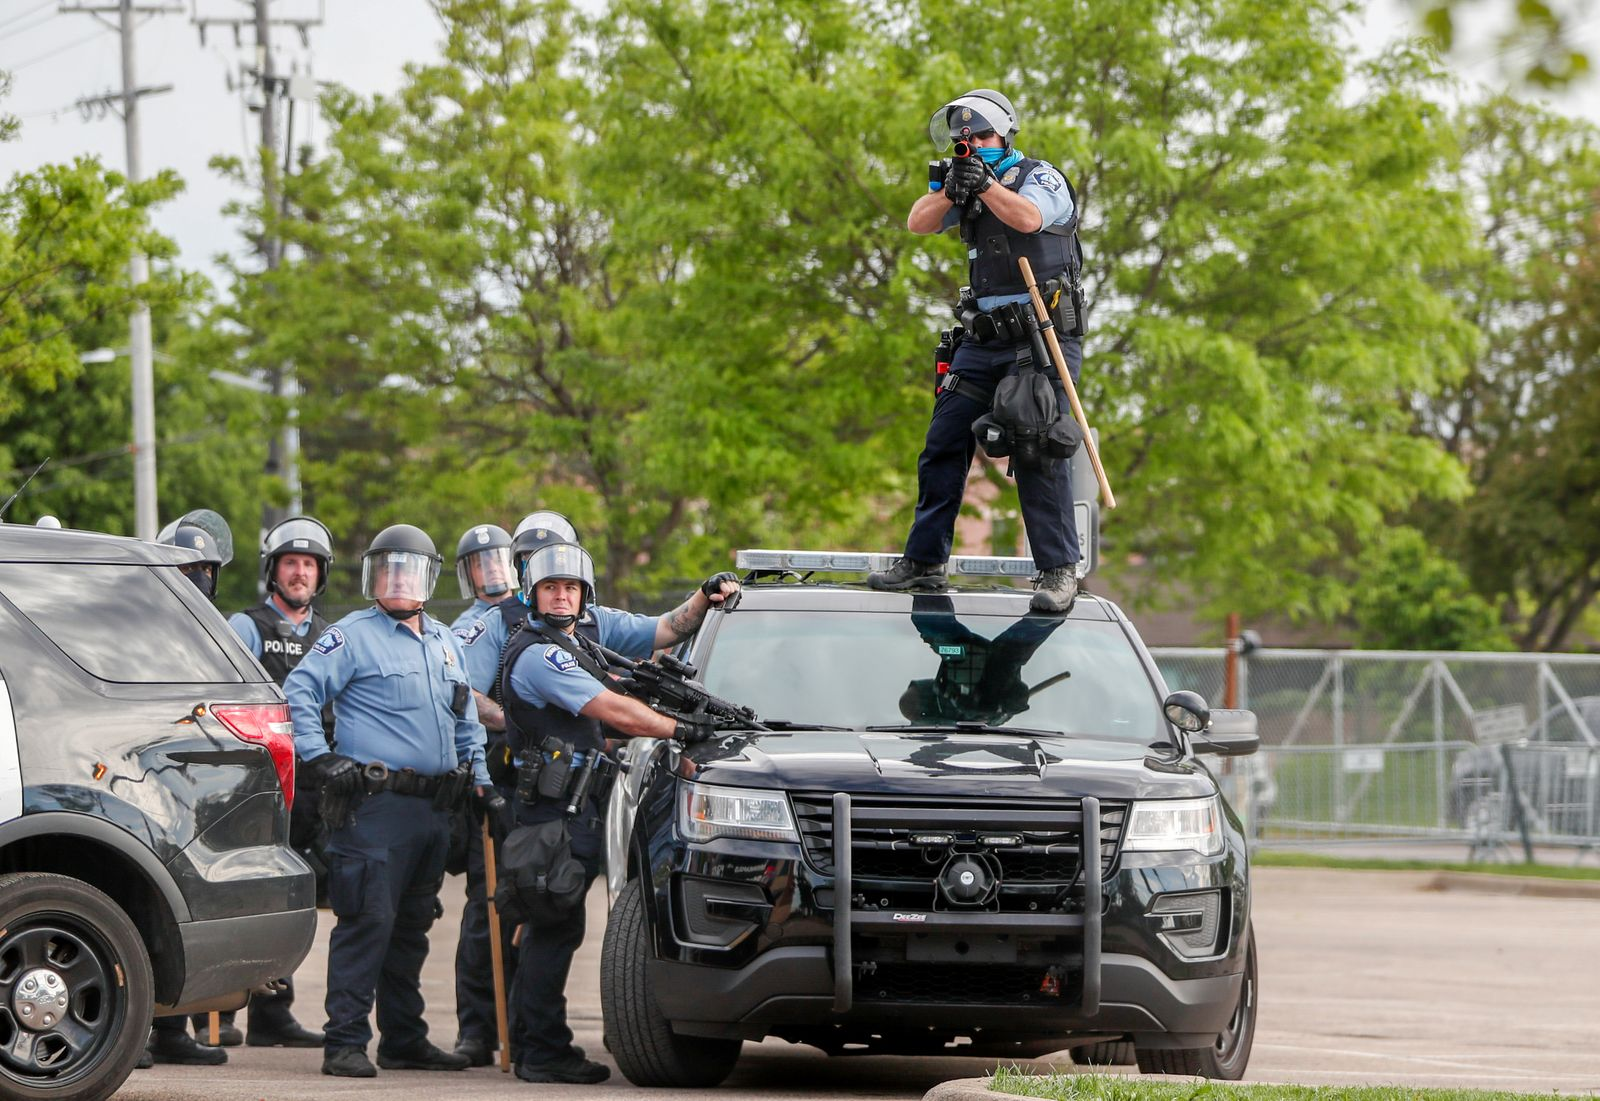 Police officer aims gun before firing at people at the Minneapolis Police Department's Third Precinct station to protest the death of George Floyd, in Minneapolis, Minnesota